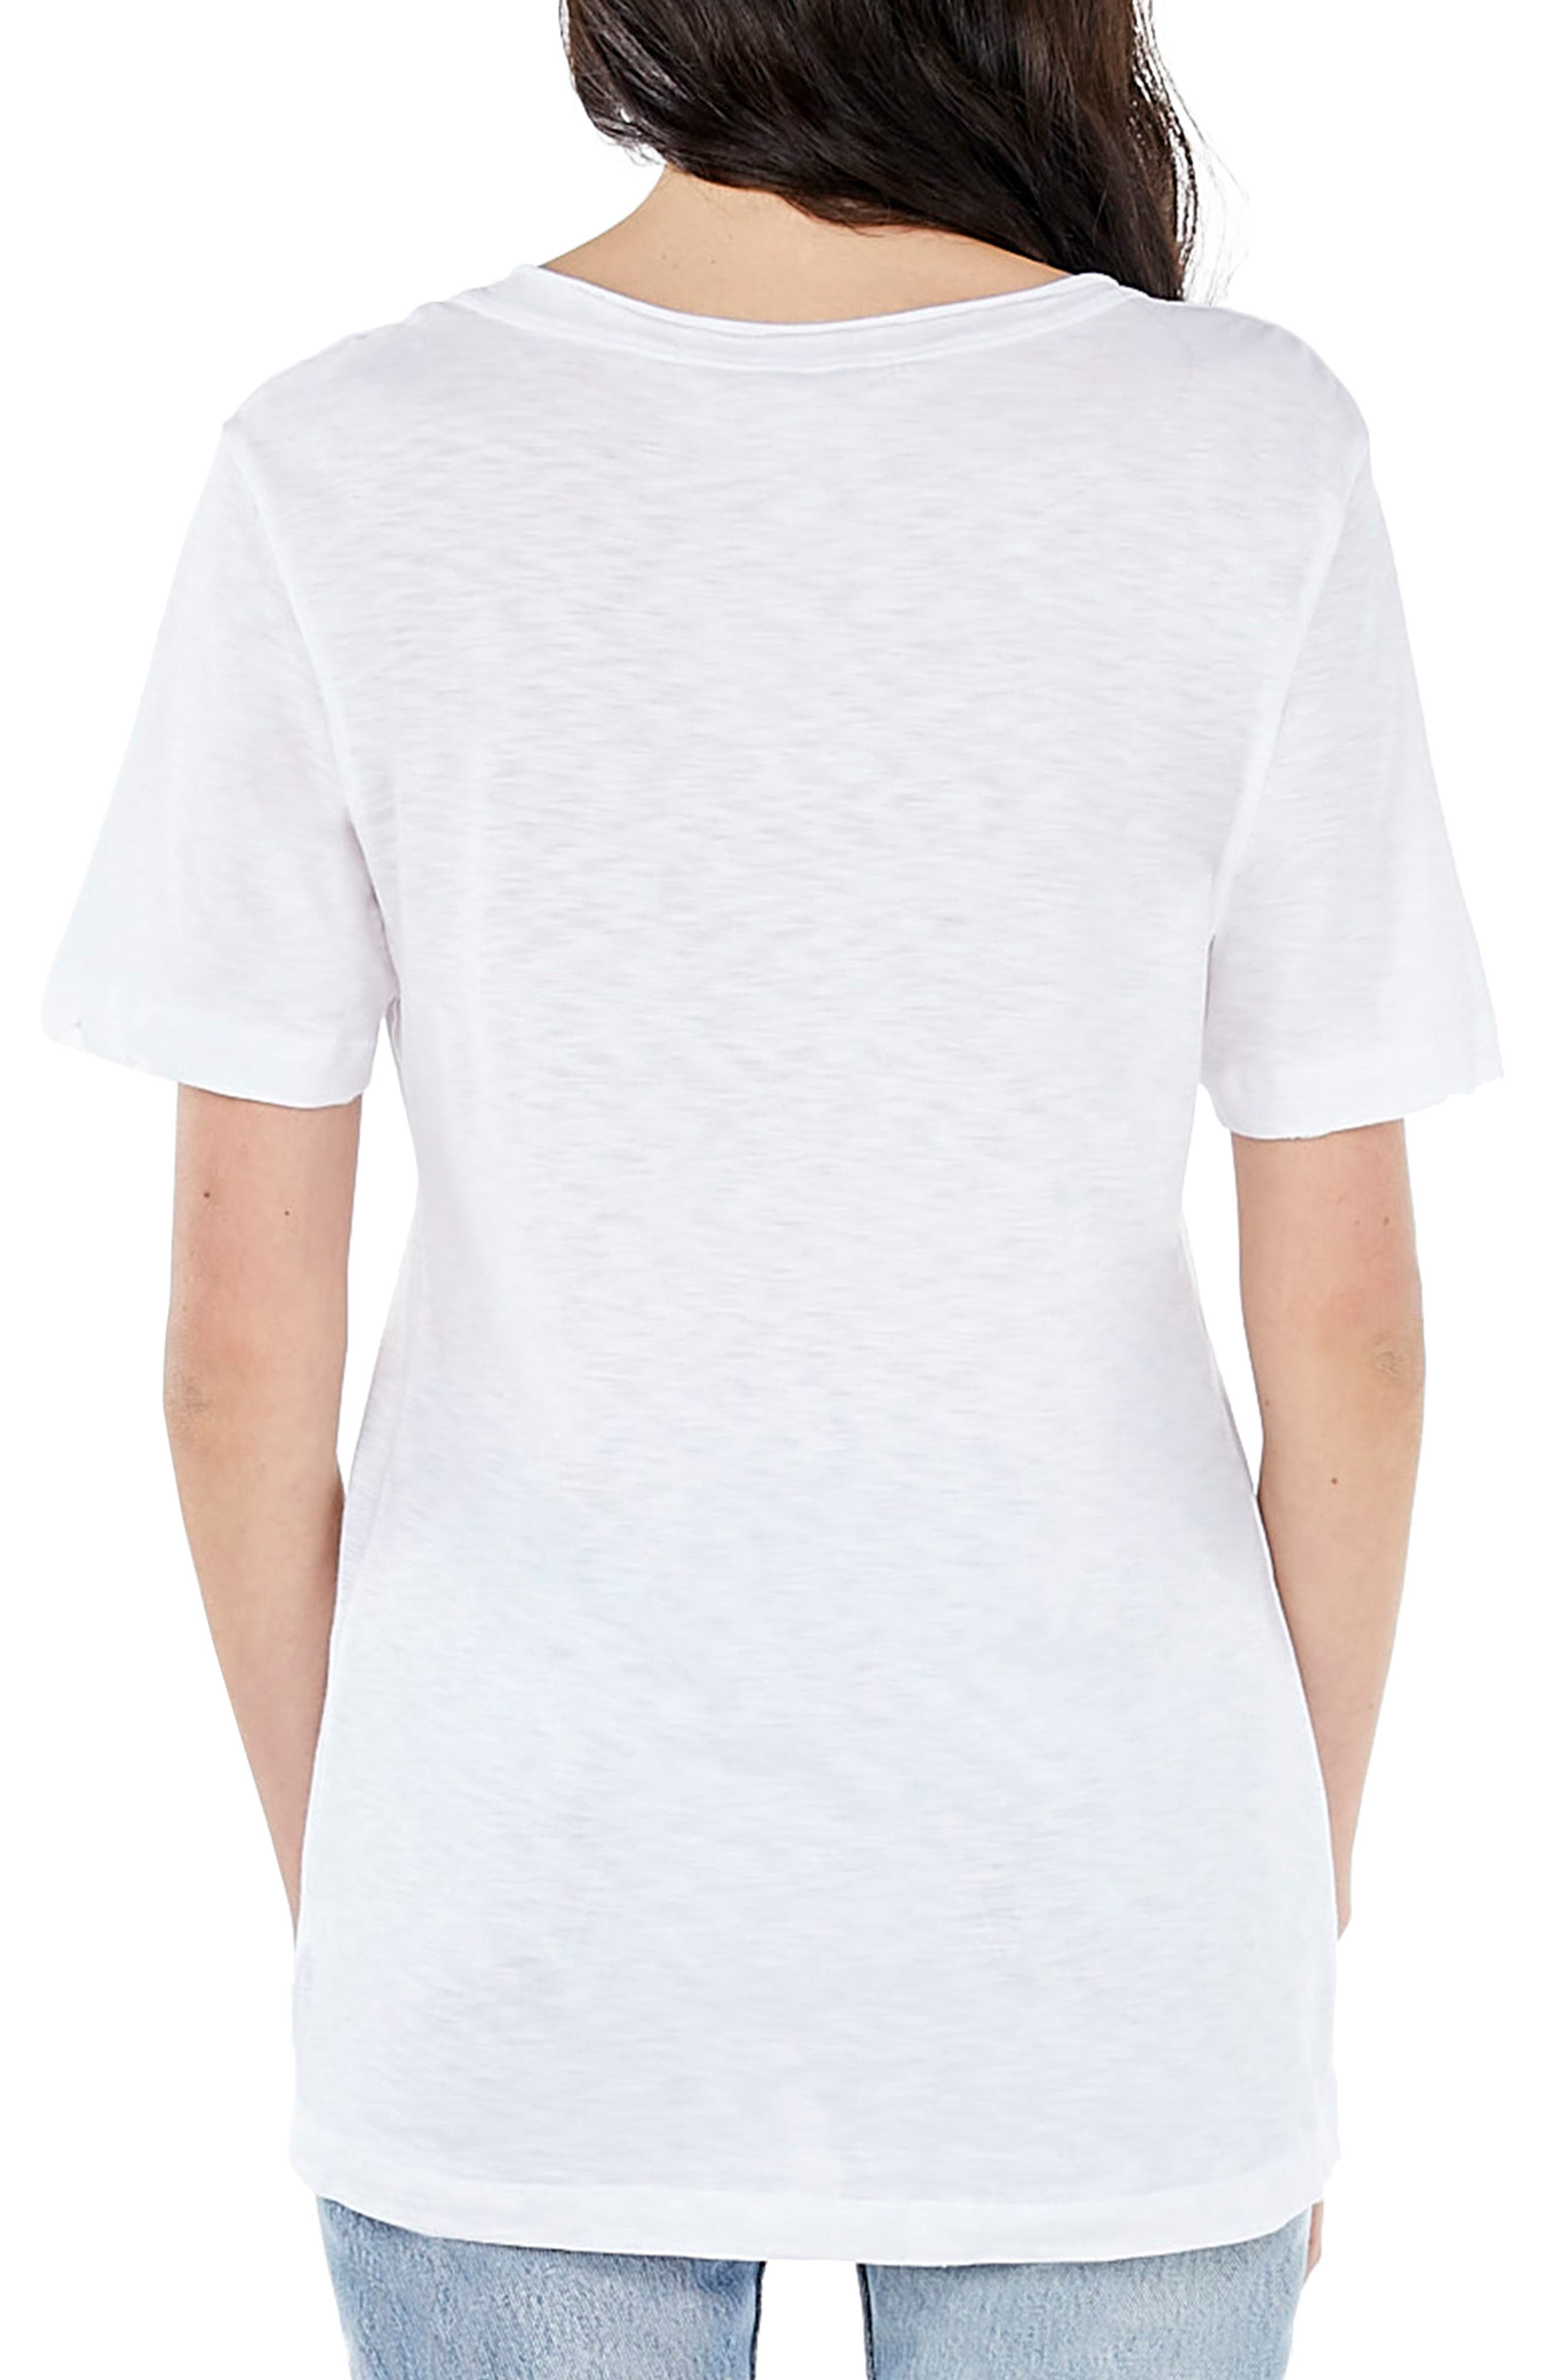 Embroidered U-Neck Tee,                             Alternate thumbnail 2, color,                             White